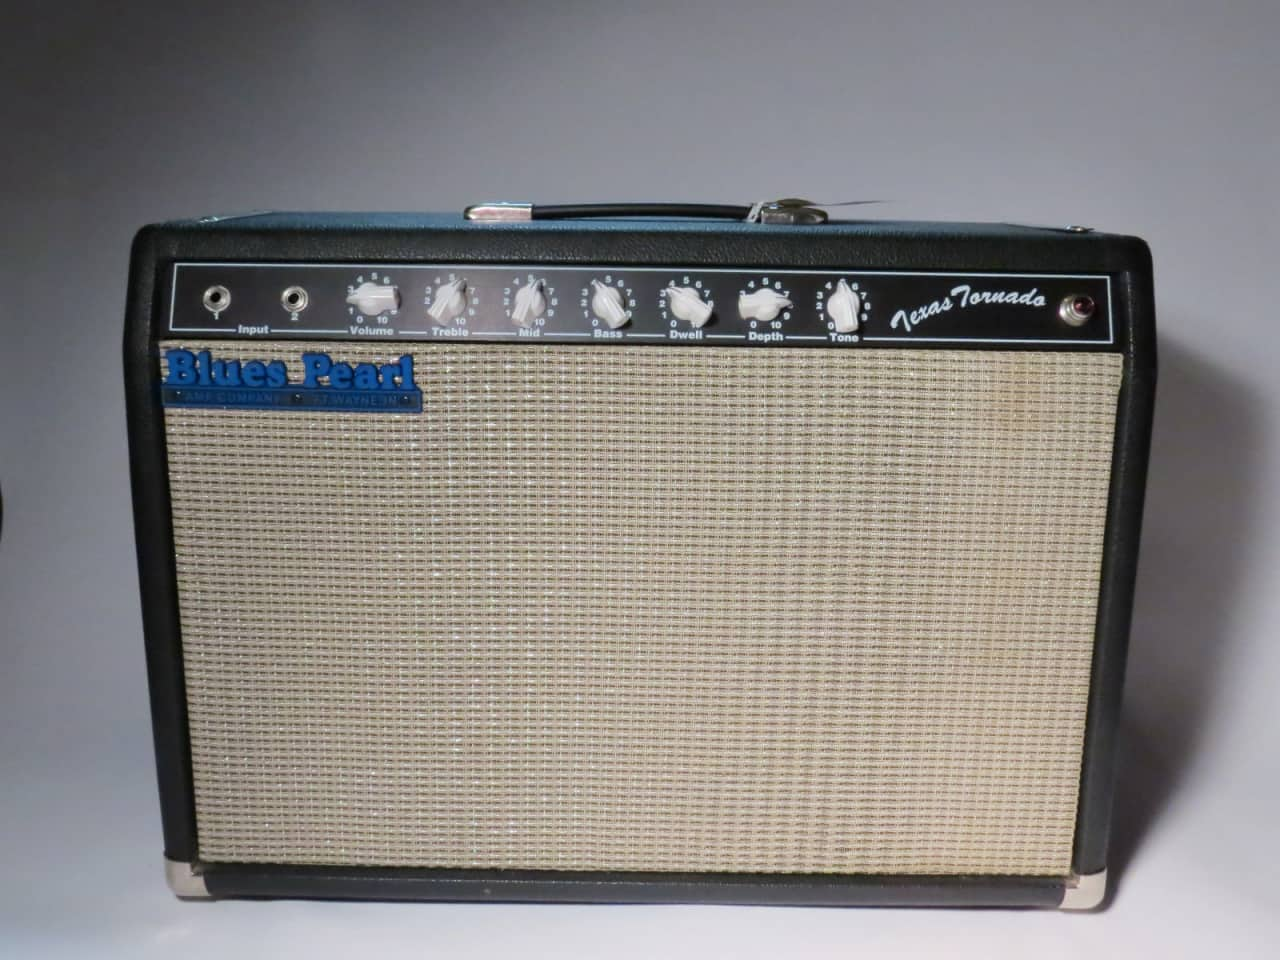 Blues Pearl Texas Tornado Amp In Great Pristine Condition ...